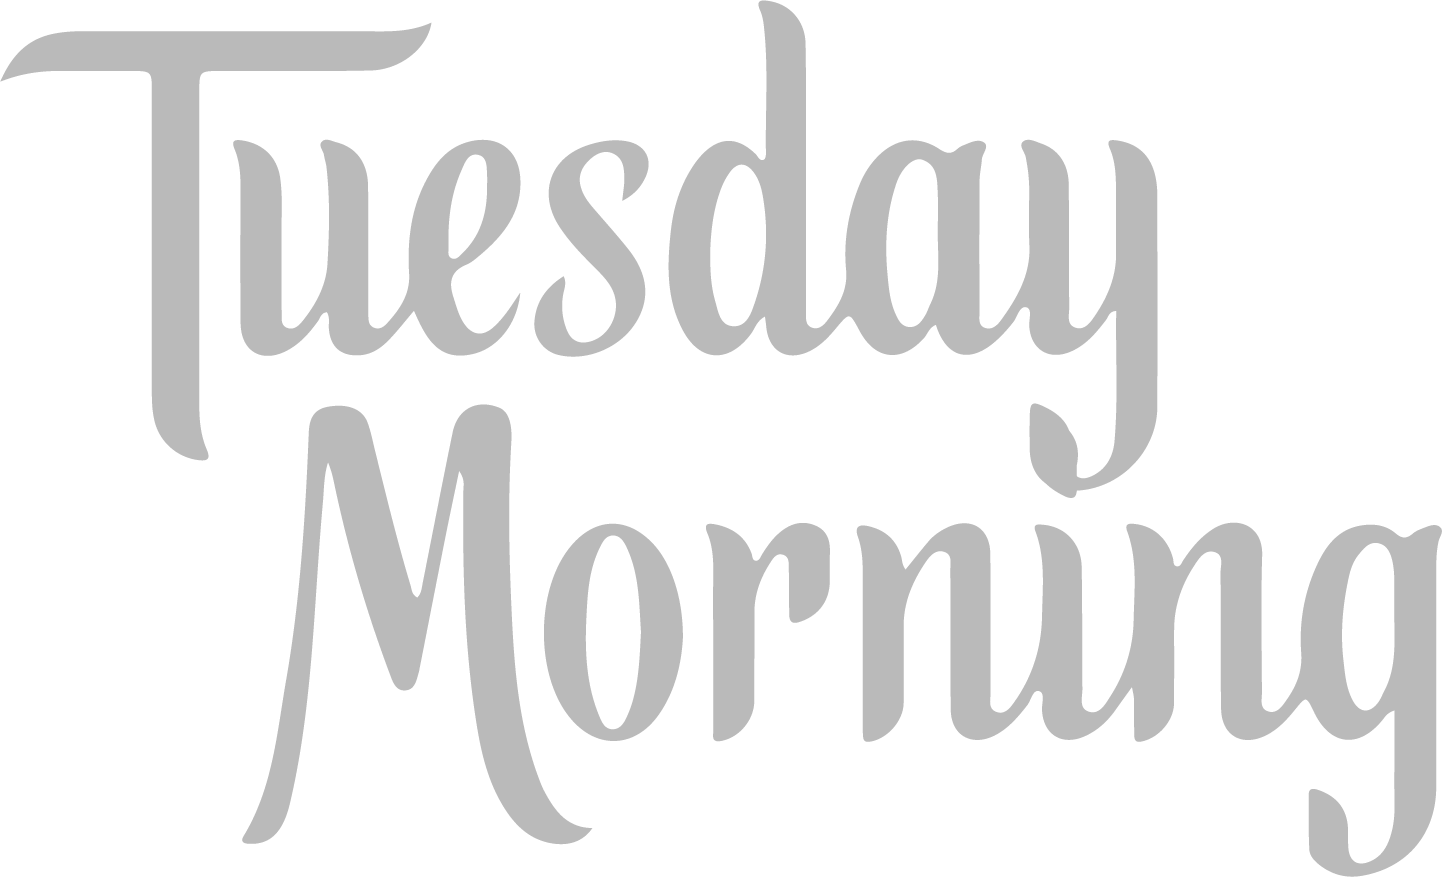 Tuesday%20Morning_White_edited.png